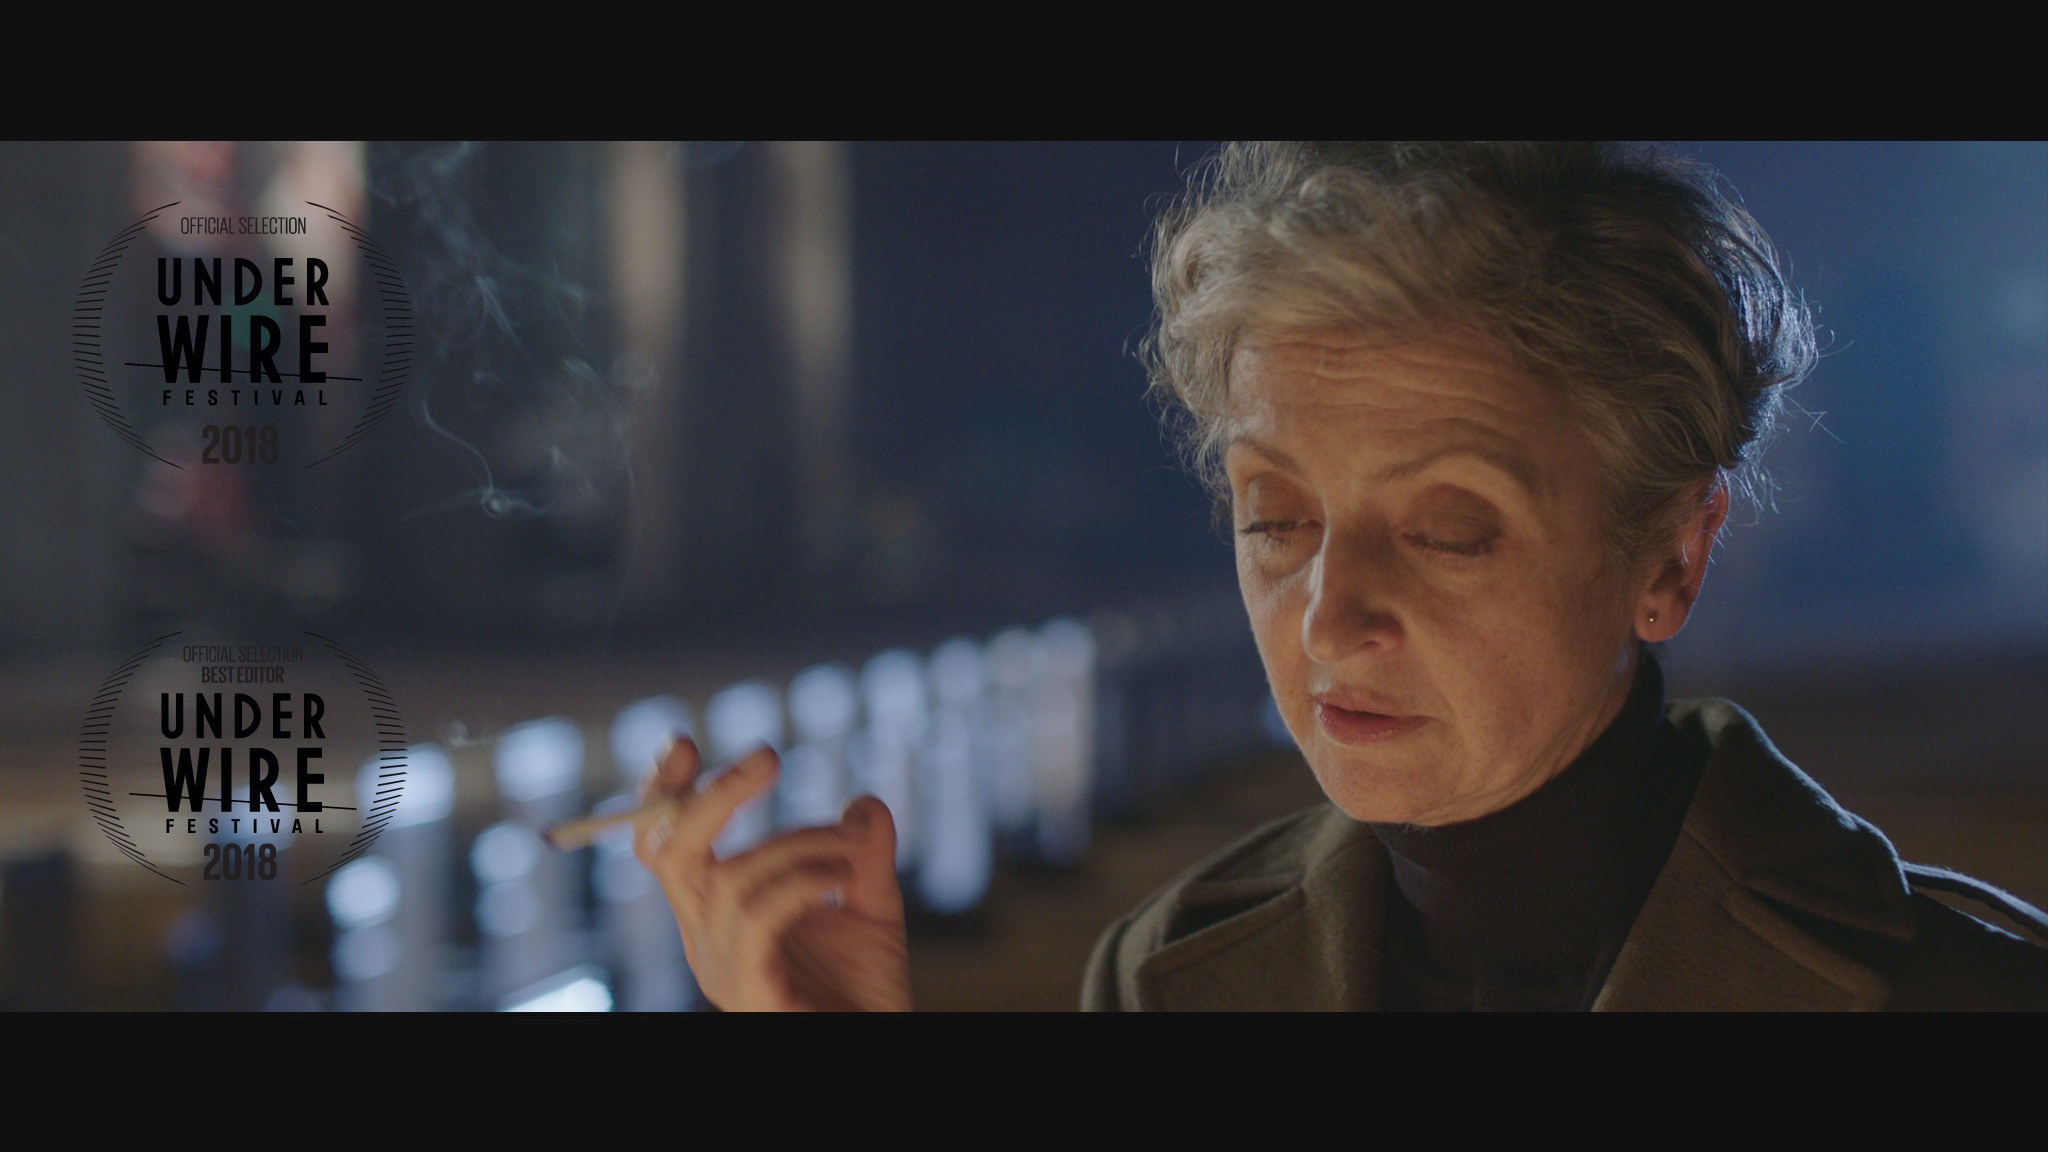 Fee (short) 2018 Nominated for Best Editing a the BAFTA recognised Underwire Film Festival (2018)